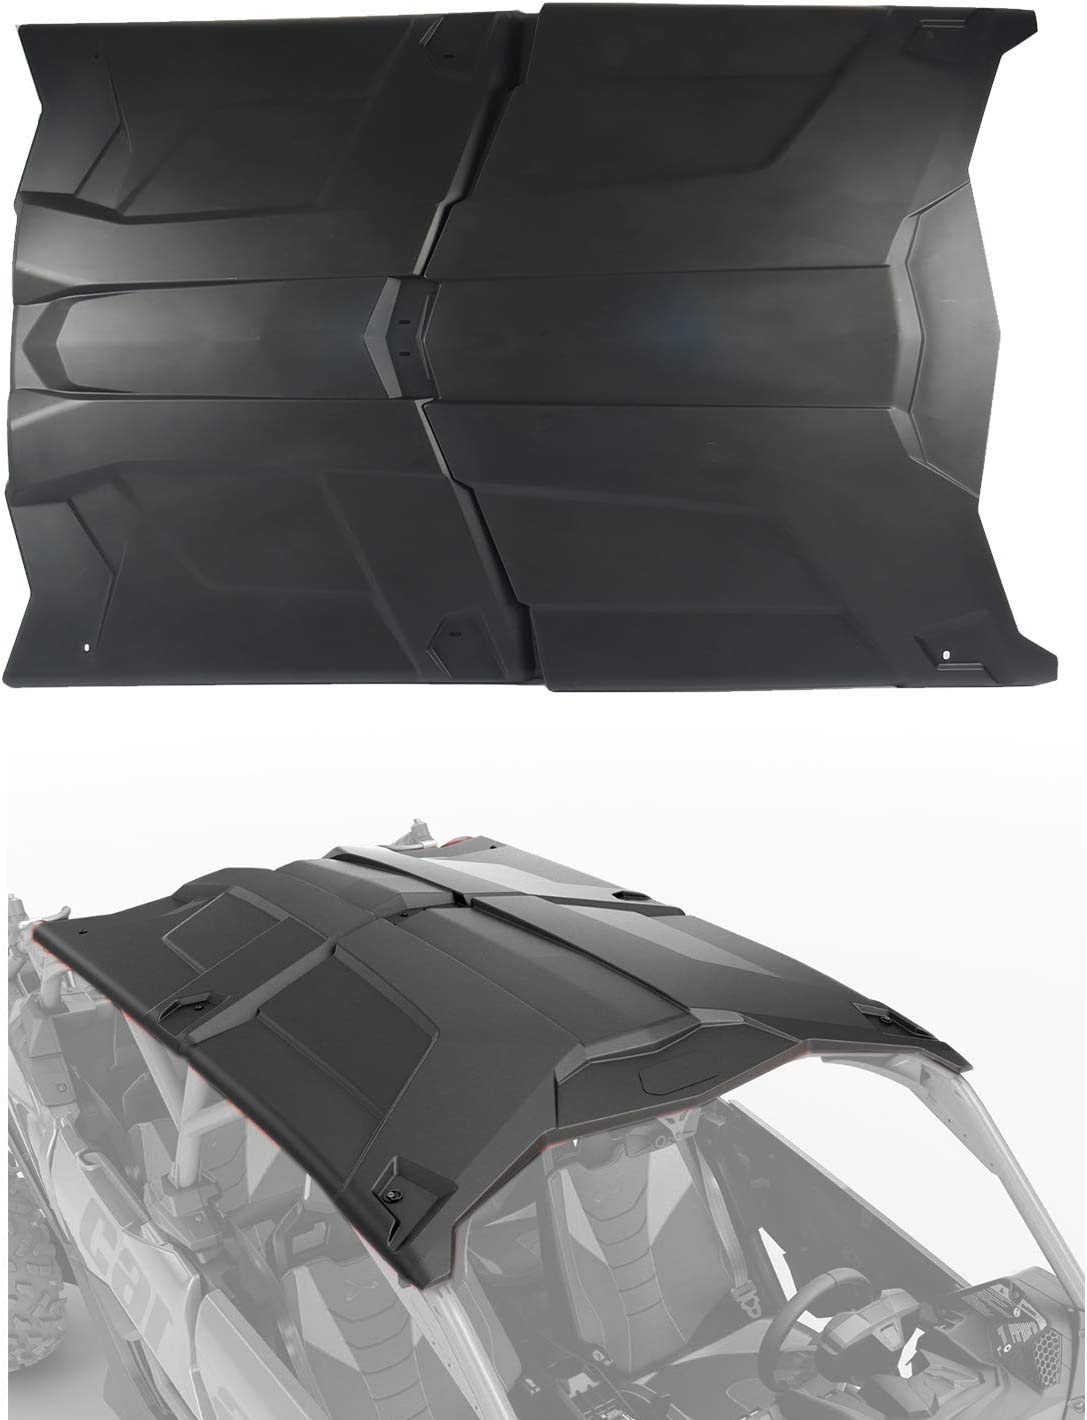 OWCAS UTV Hard Sport Roof Cover for 2017 2018 2019 2020 2021 Can Am Maverick X3 MAX 4 Door / 4 Seater